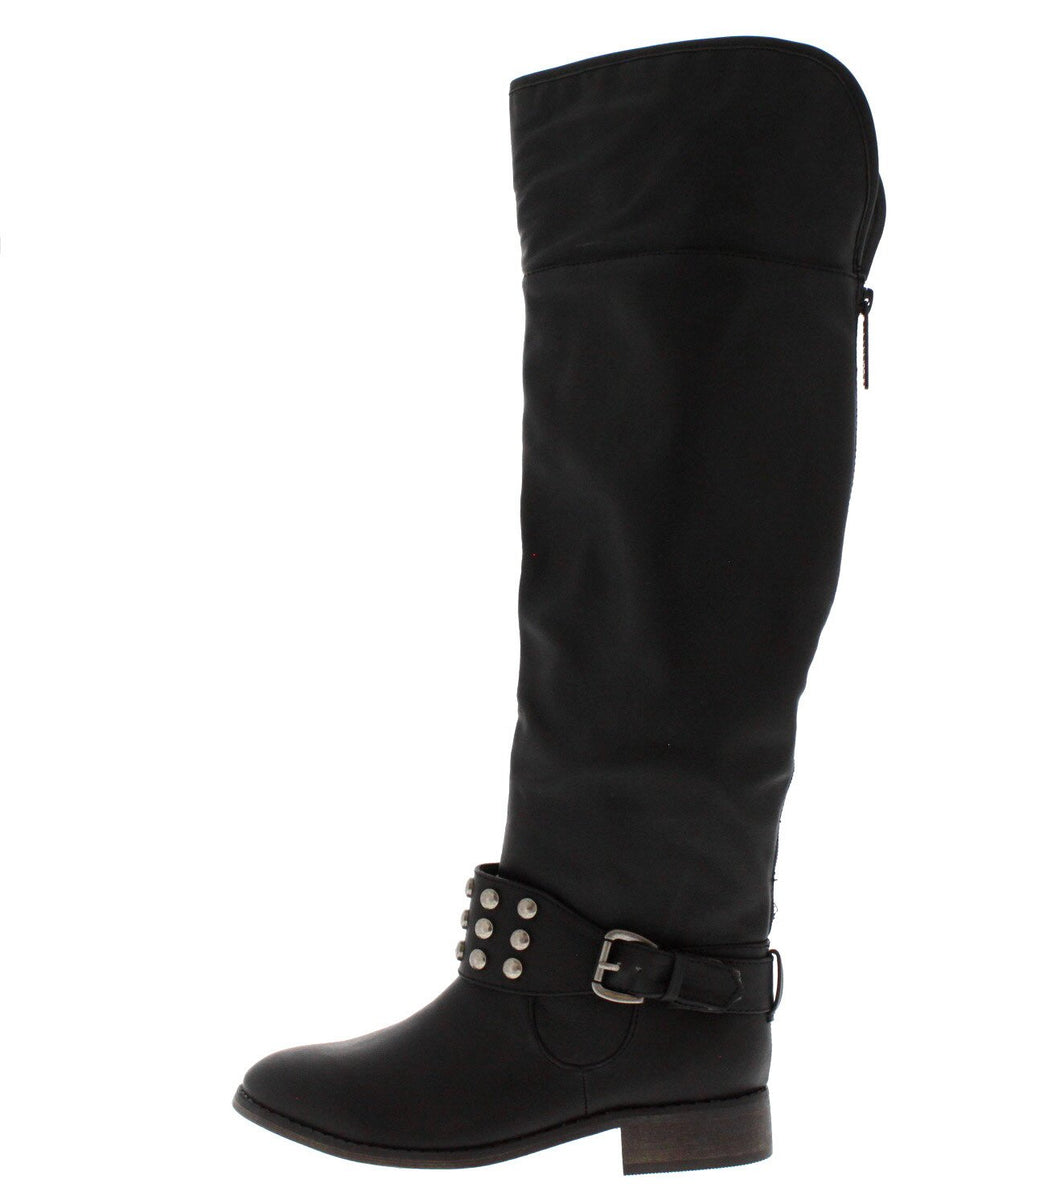 Herley11 Black Studded Riding Boot